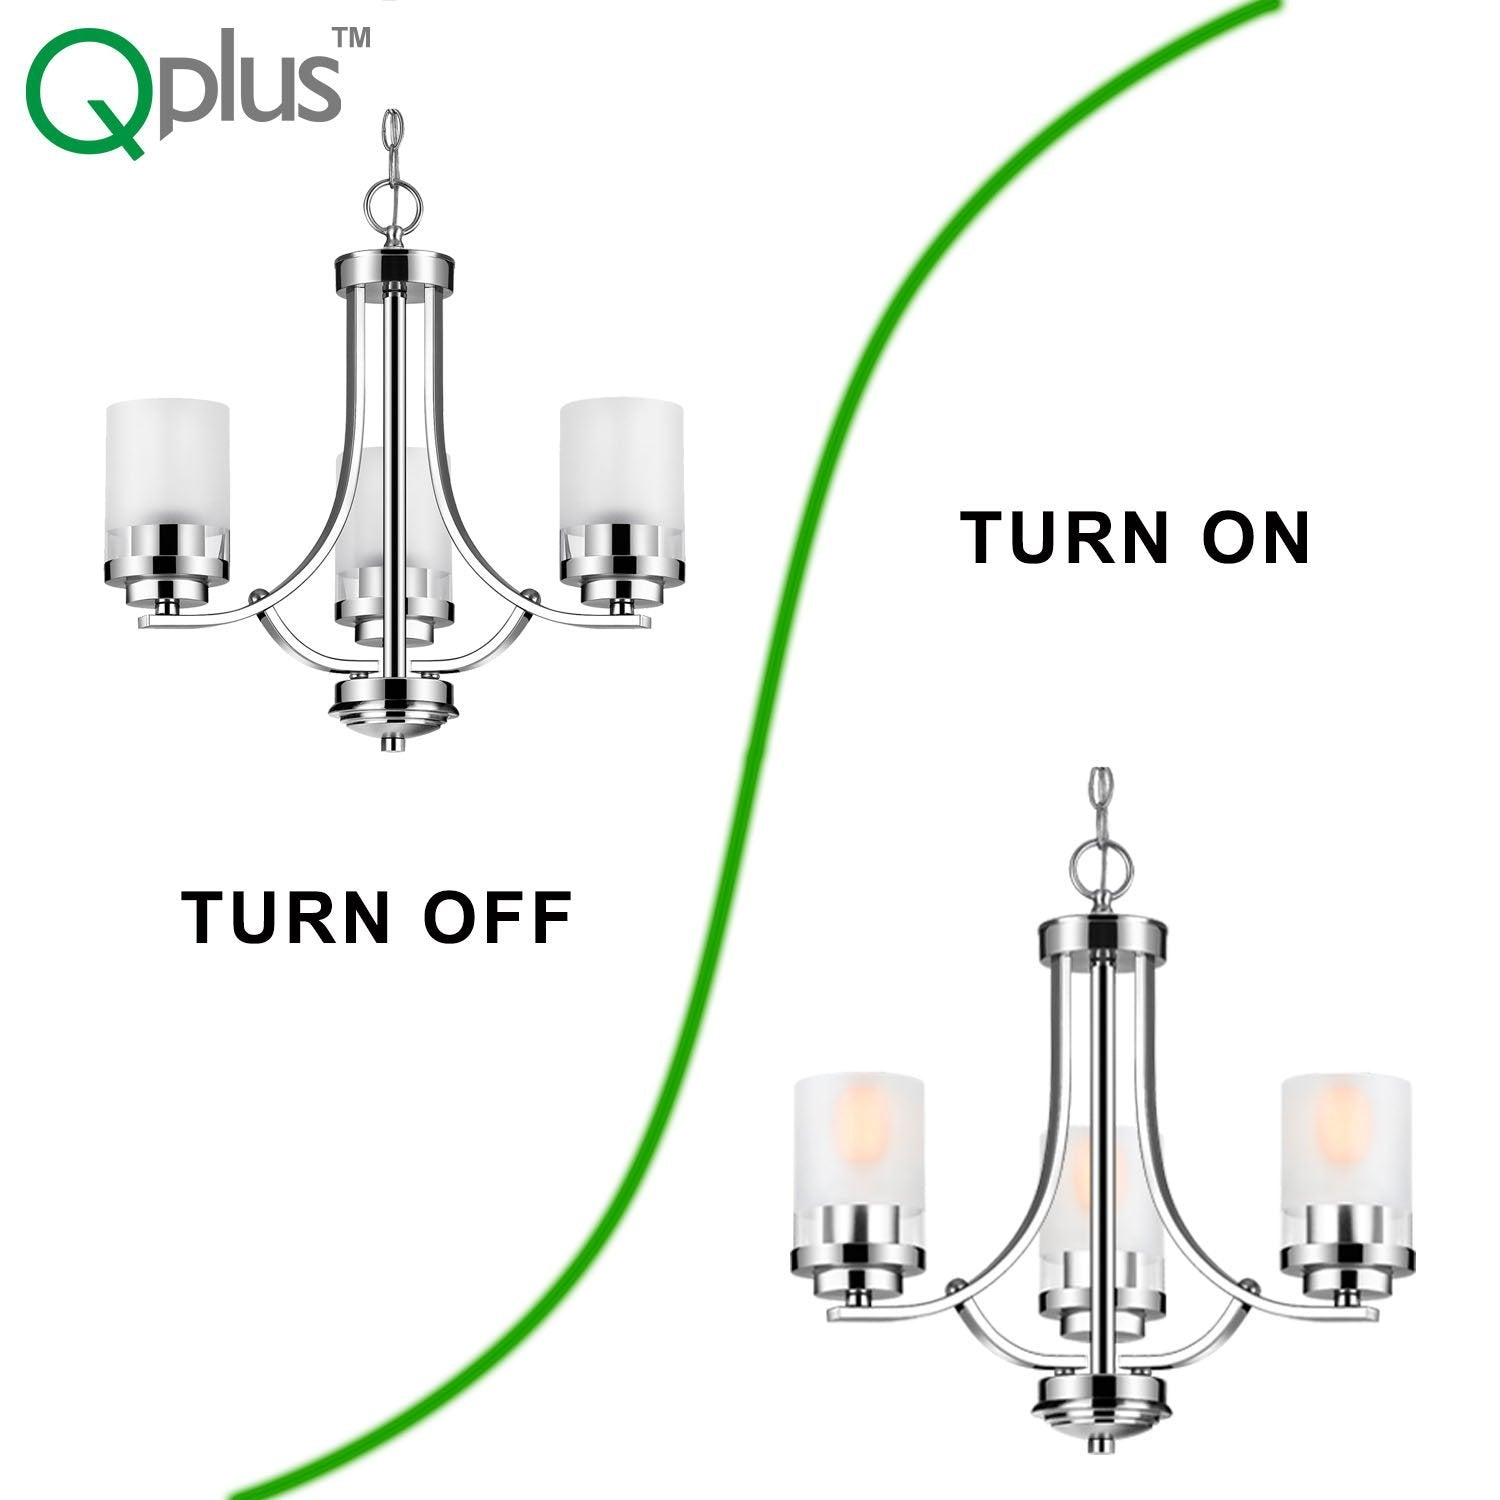 QPlus 3 Light Tulip Chandelier Pendant Lamp with E26 Bulb base & Clear, Frosted Glass Shades - Brushed Nickel / Bronze - QPlus Home - Brighten Your Life